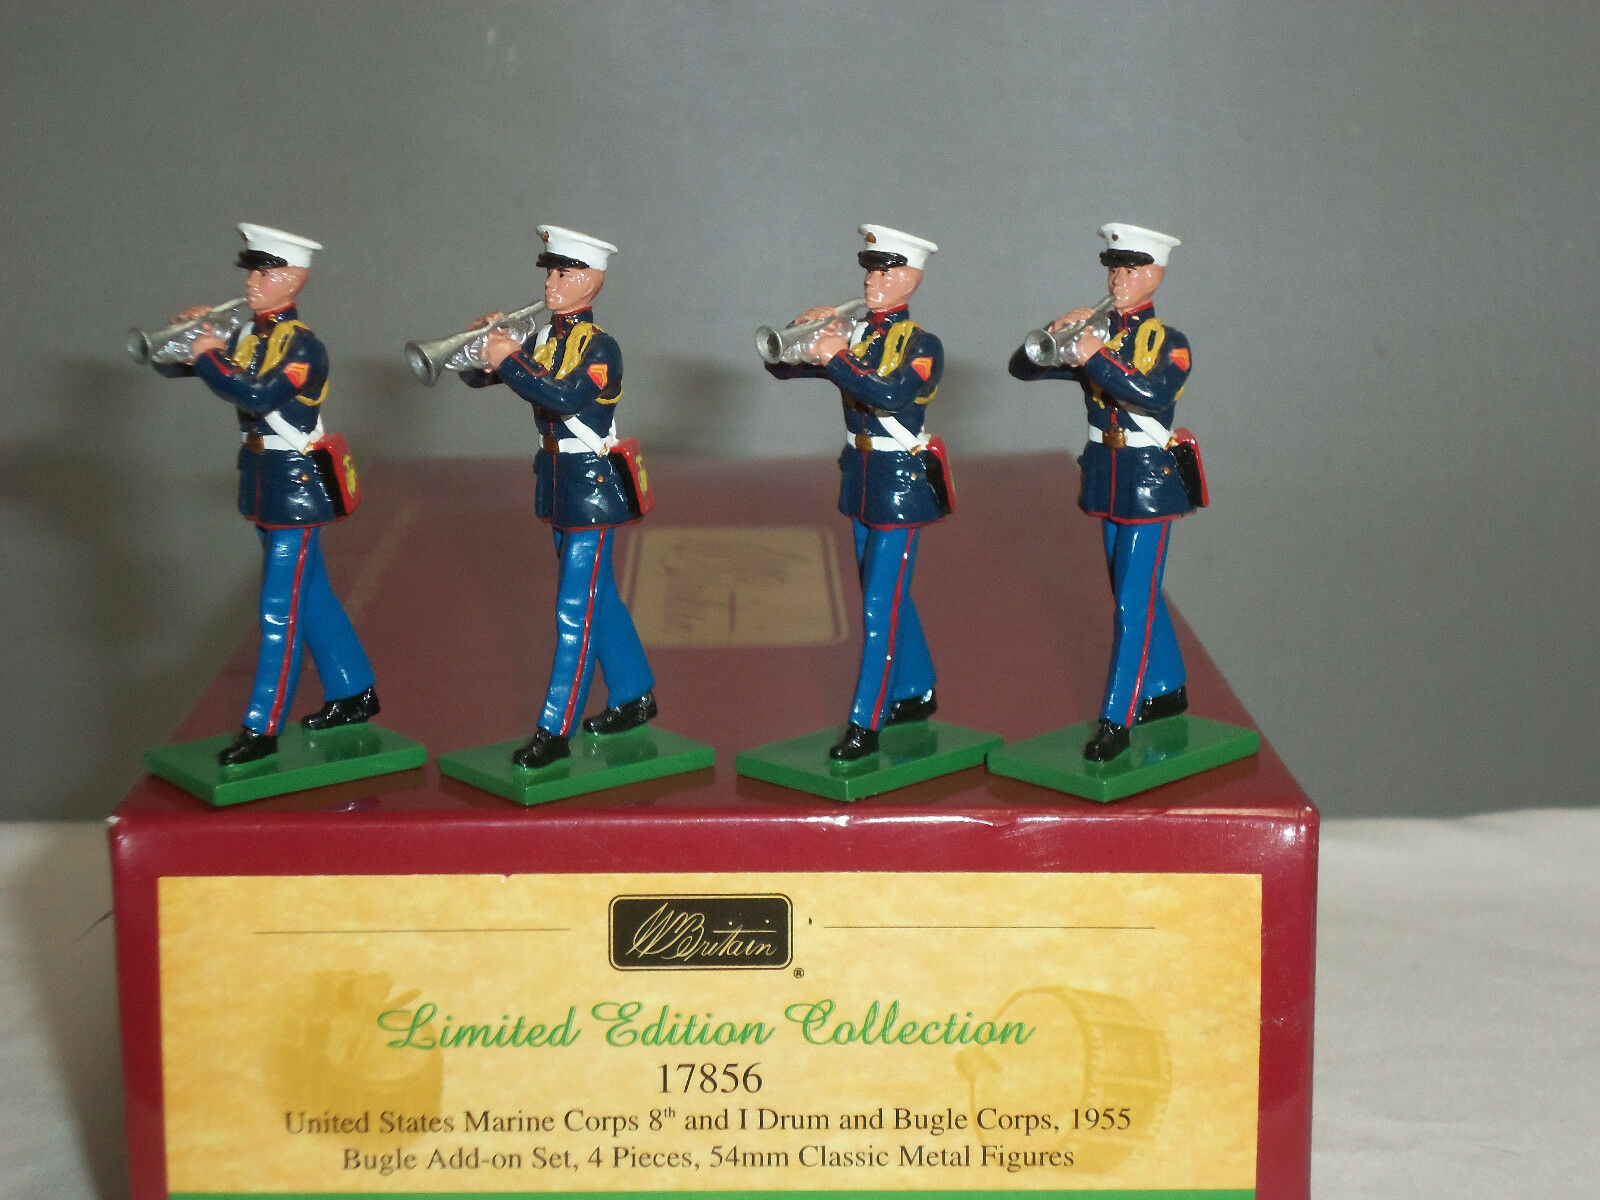 BRITAINS 17856 US MARINE CORPS DRUM + BUGLE CORPS 1955 ADD ON TOY SOLDIER SET